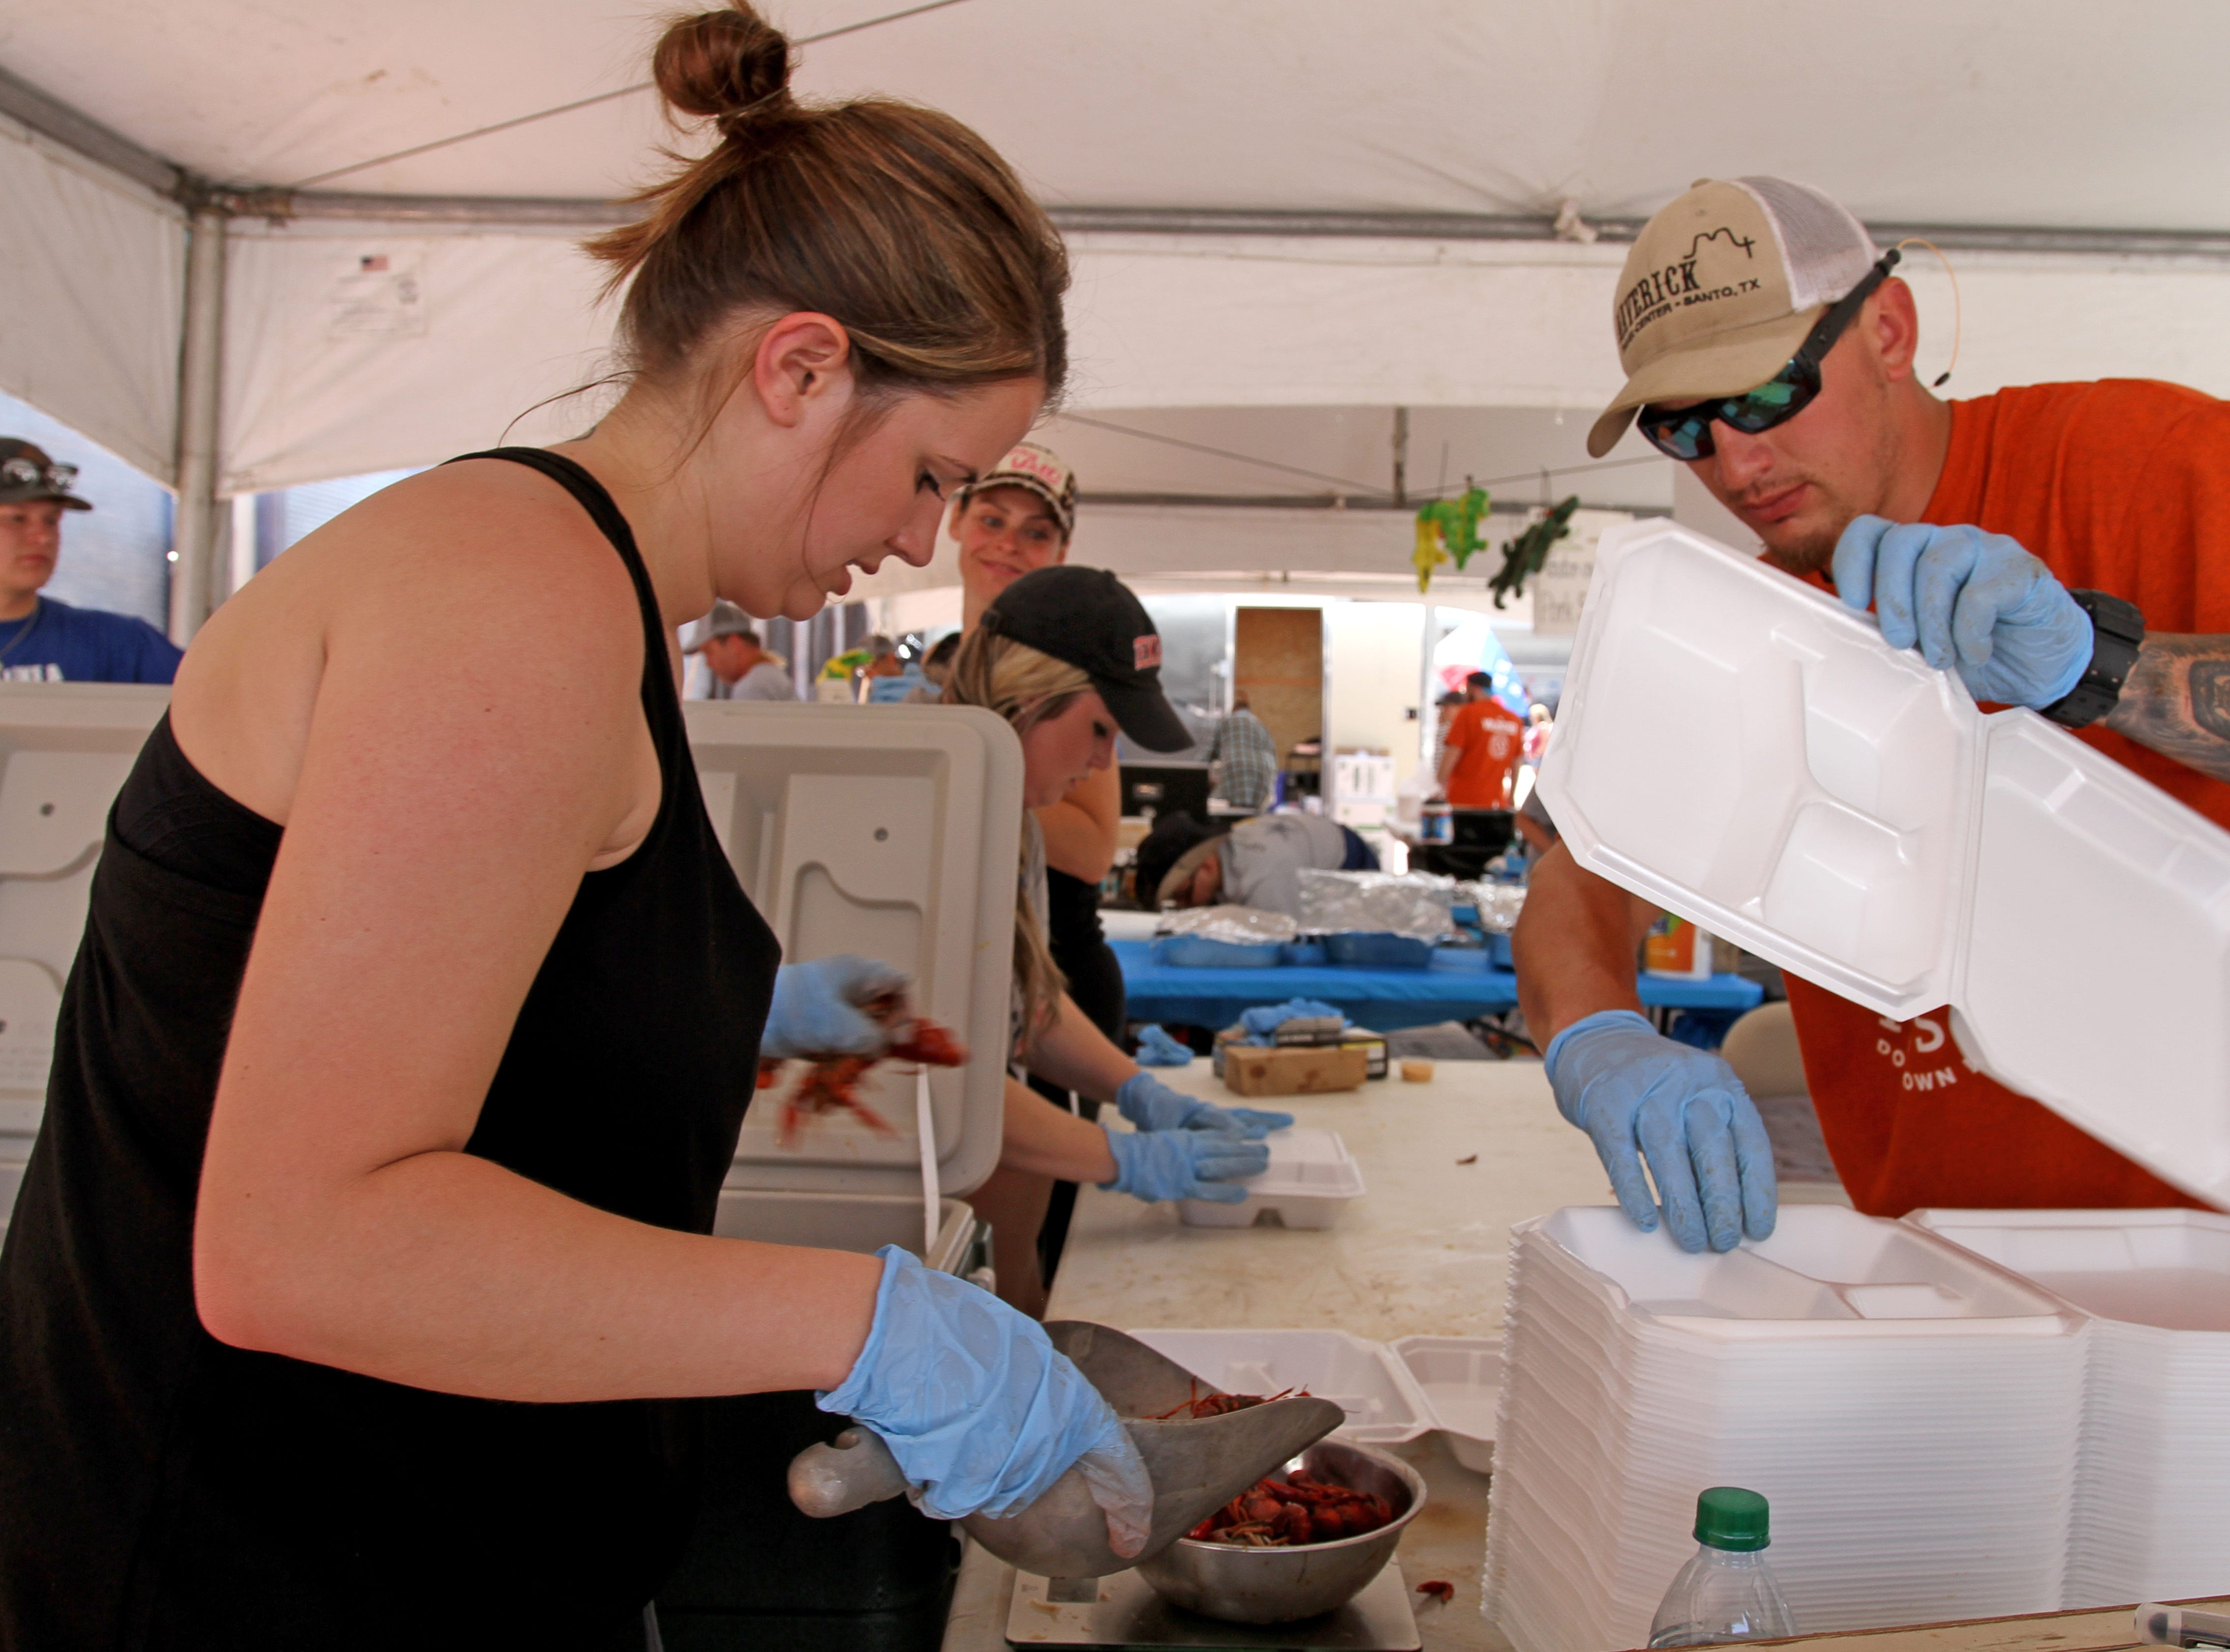 Alexis. left, and Chad Michalski work on serving crawfish at Cajun Fest Saturday, April 27, 2019, at 10th and Ohio downtown.